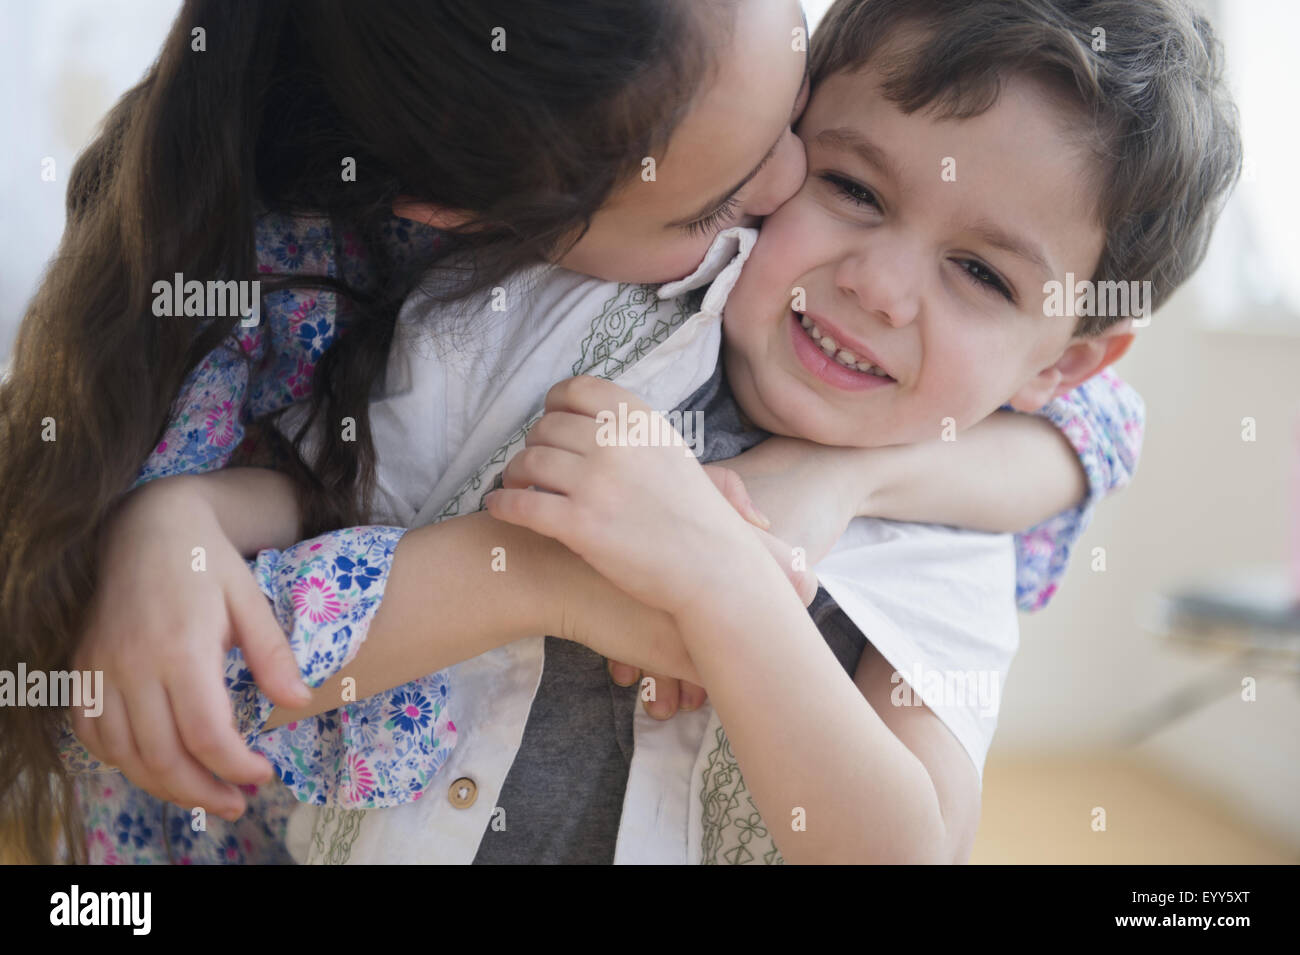 Close up of Caucasian girl kissing brother Stock Photo